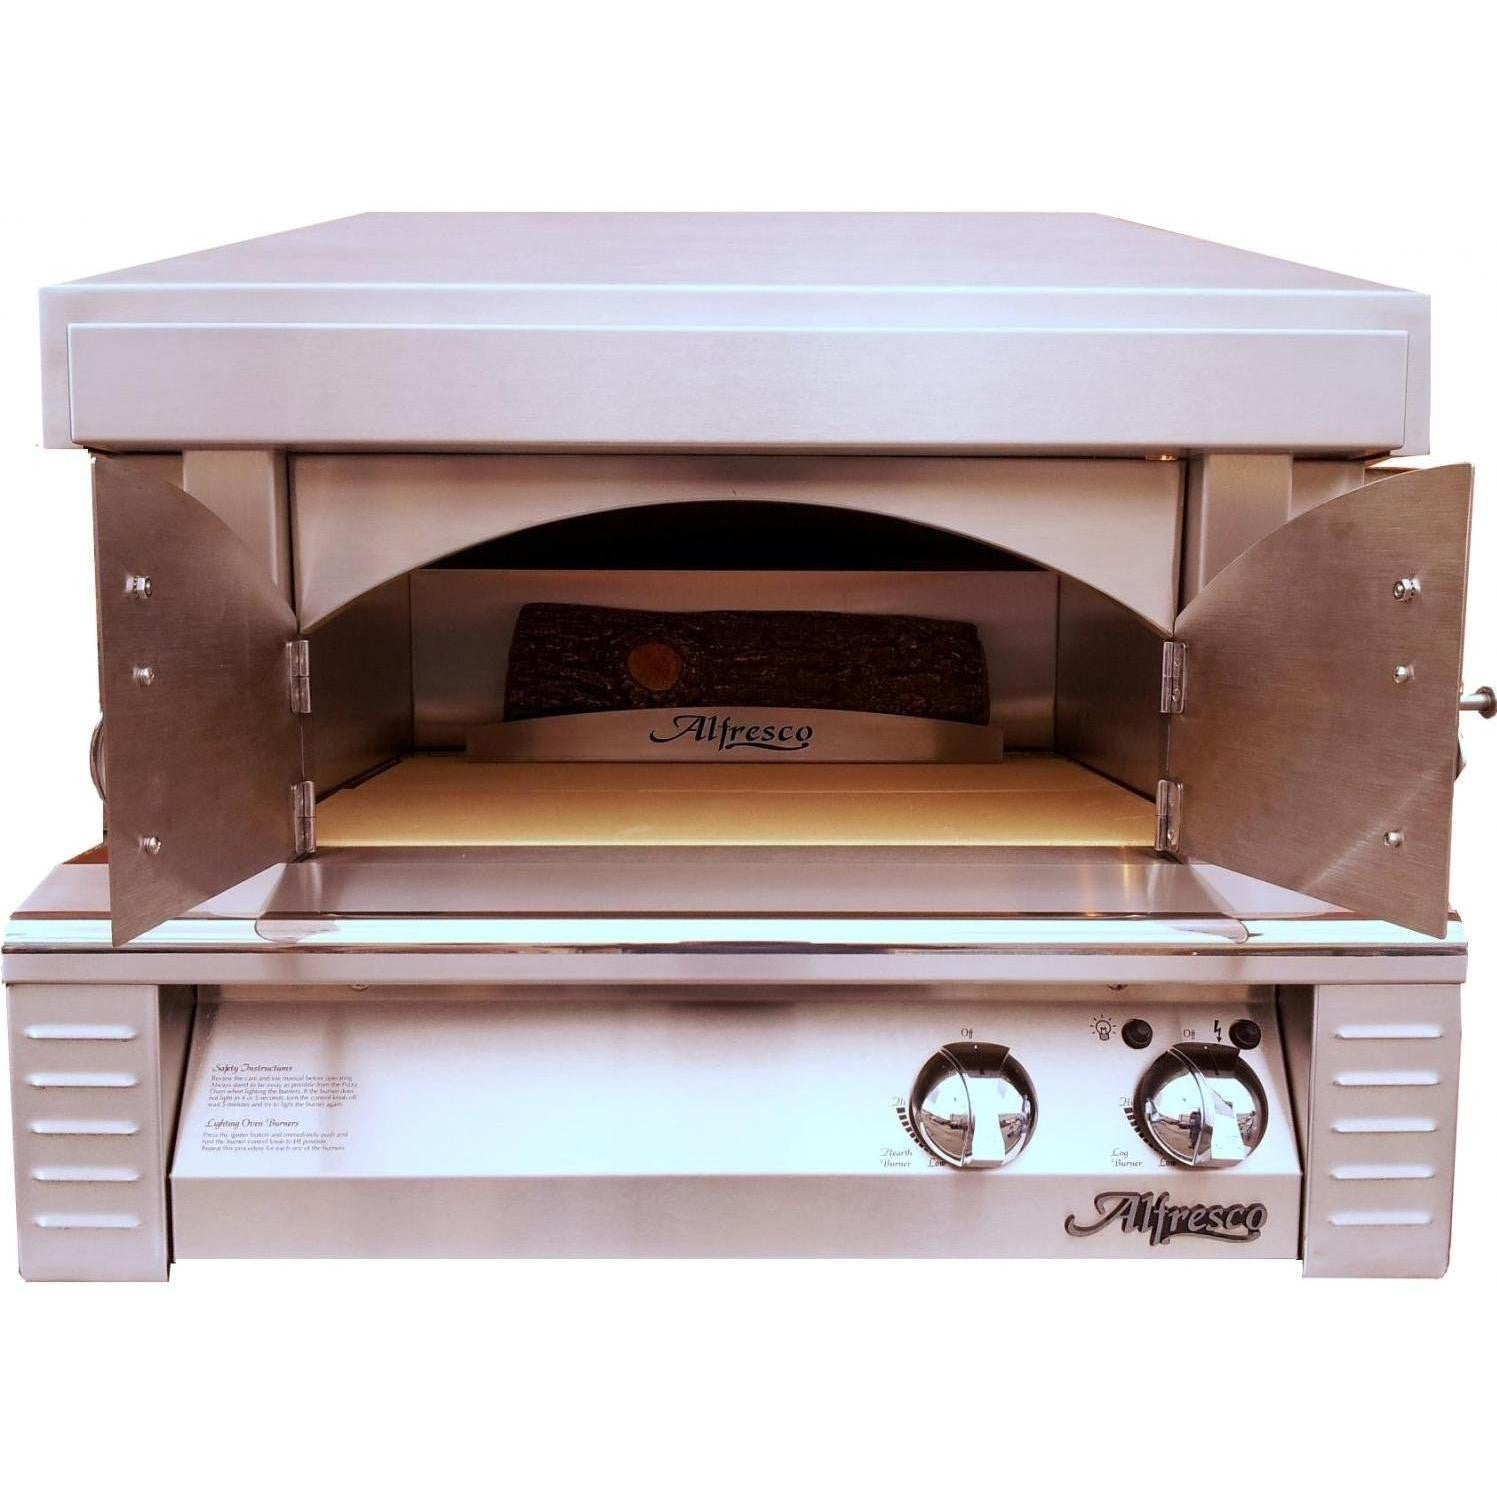 oven ovens electric pizza countertops countertop deck waring single htm